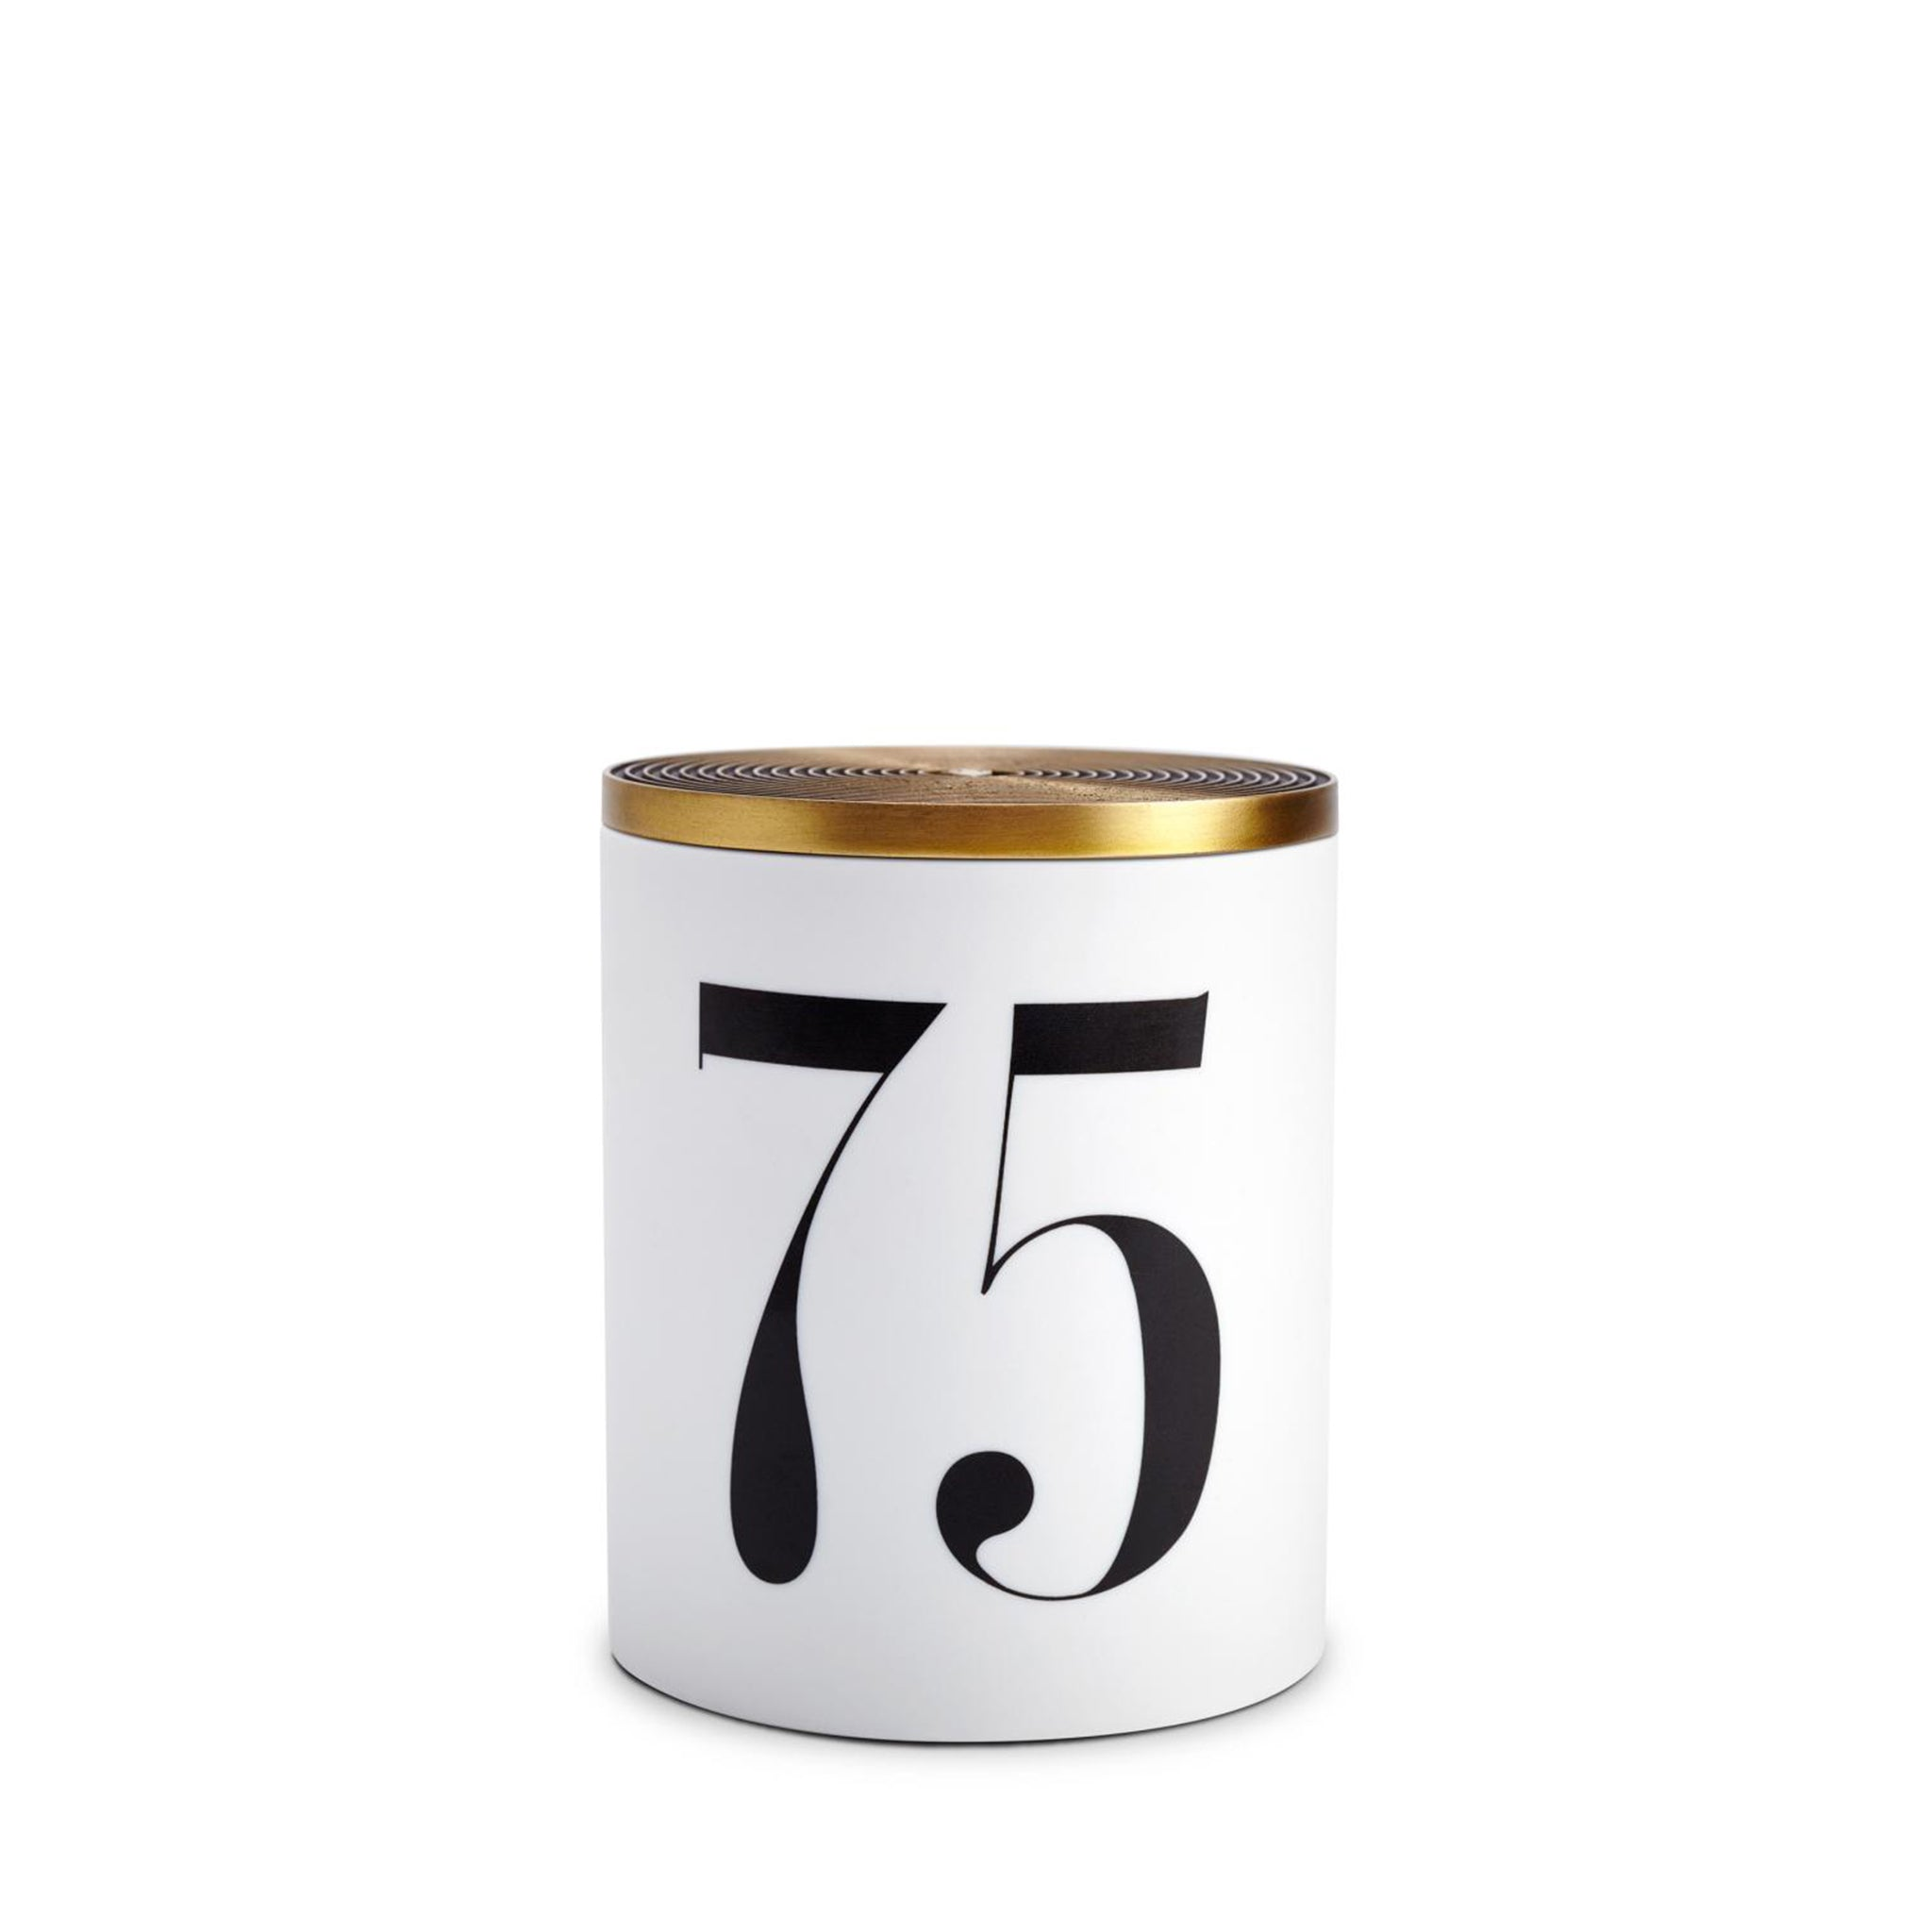 The Russe No.75 Candle